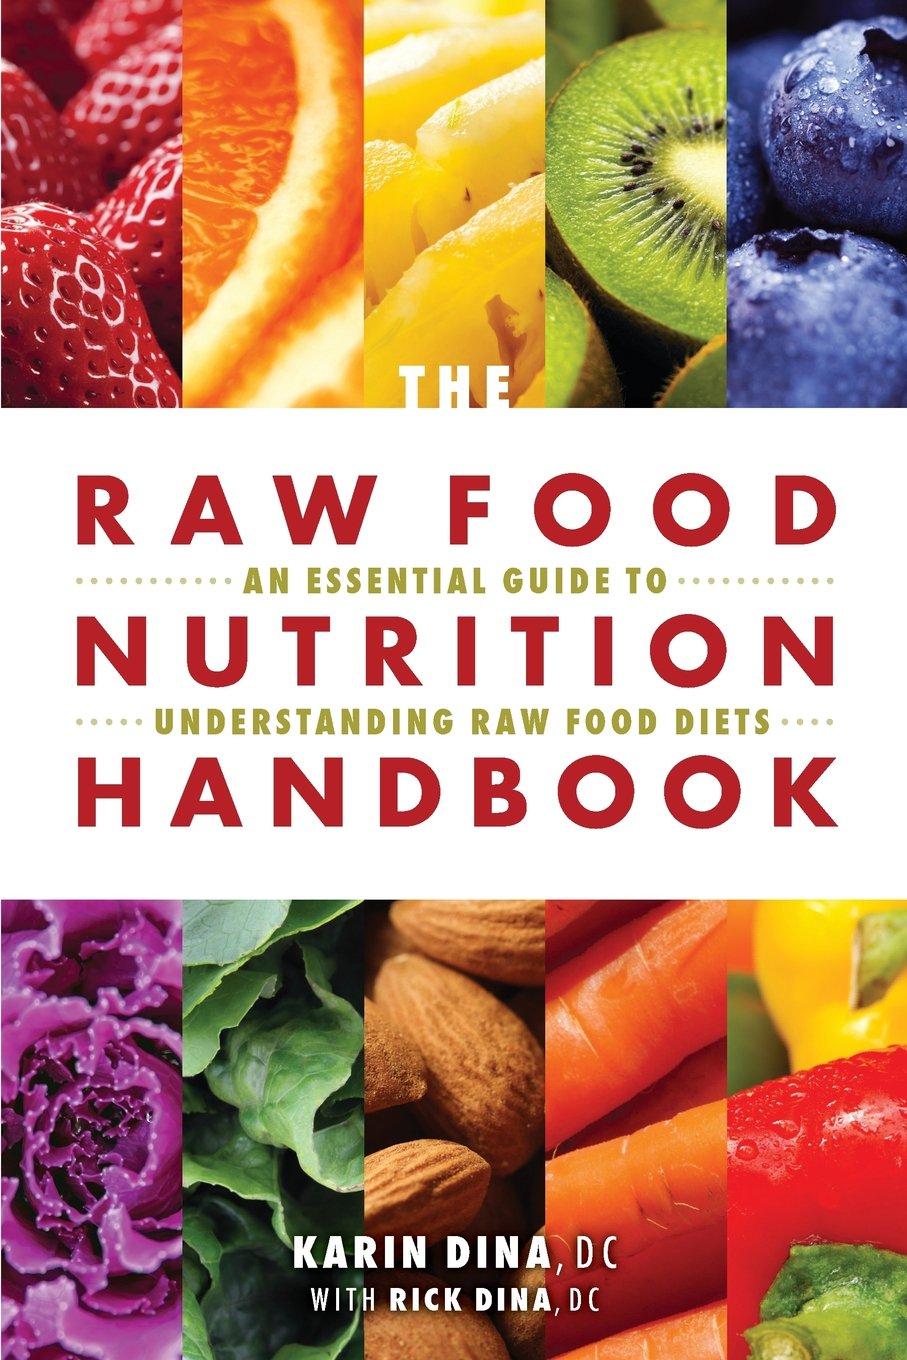 The raw food nutrition handbook an essential guide to understanding the raw food nutrition handbook an essential guide to understanding raw food diets karin dina rick dina 9781570673276 amazon books forumfinder Images